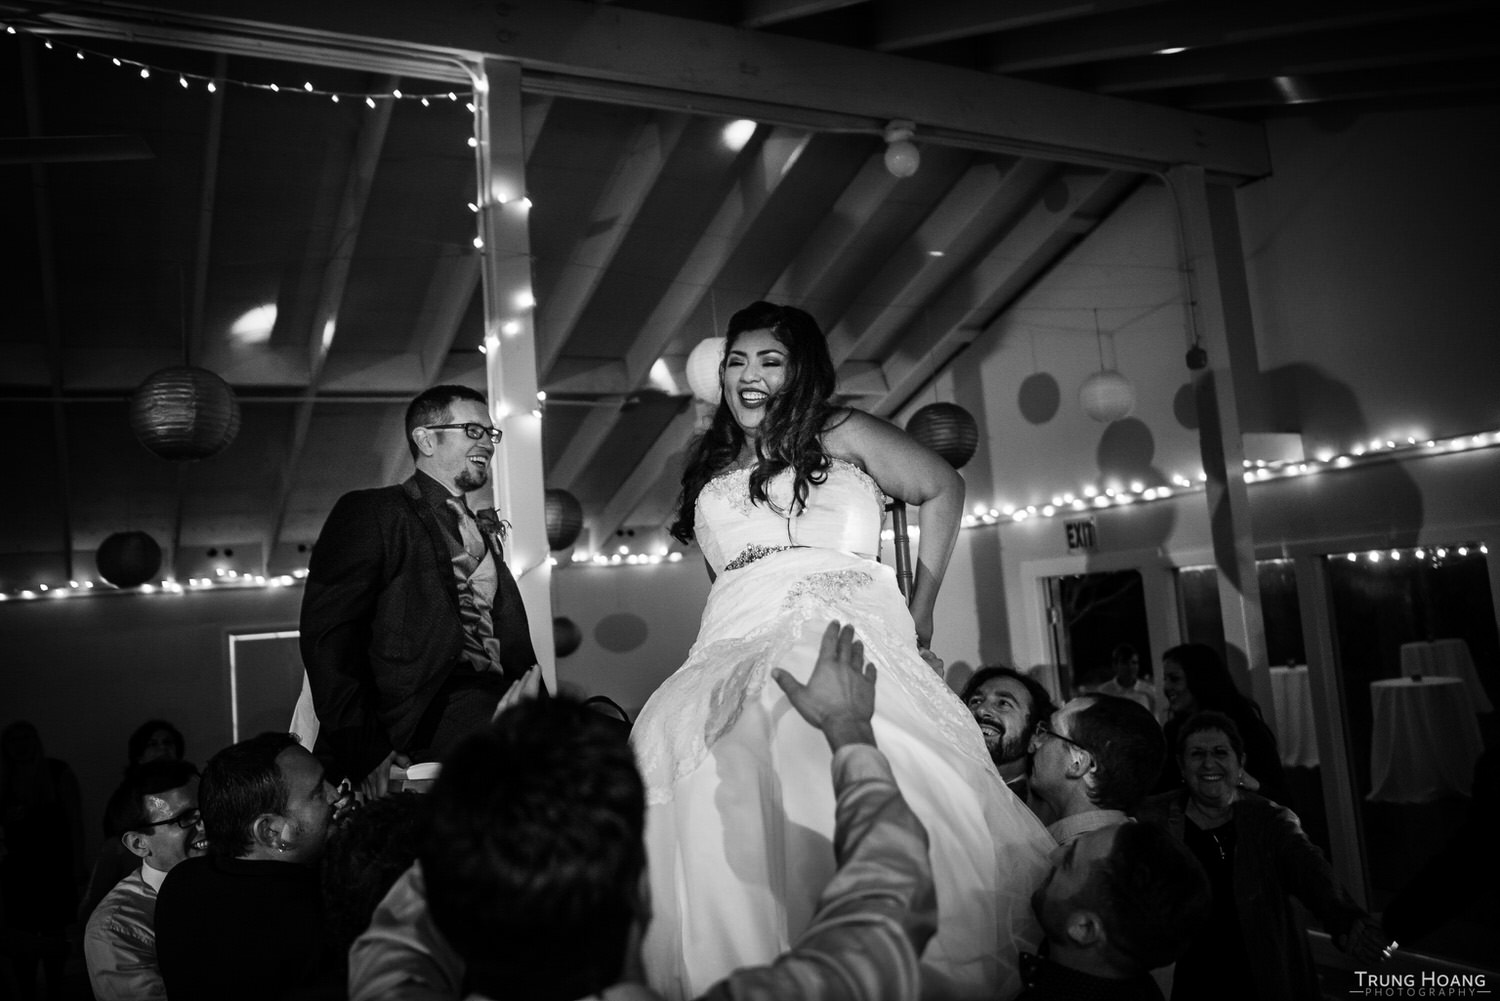 Photo by: Trung Hoang Photography (www.trunghoangphotography.com)